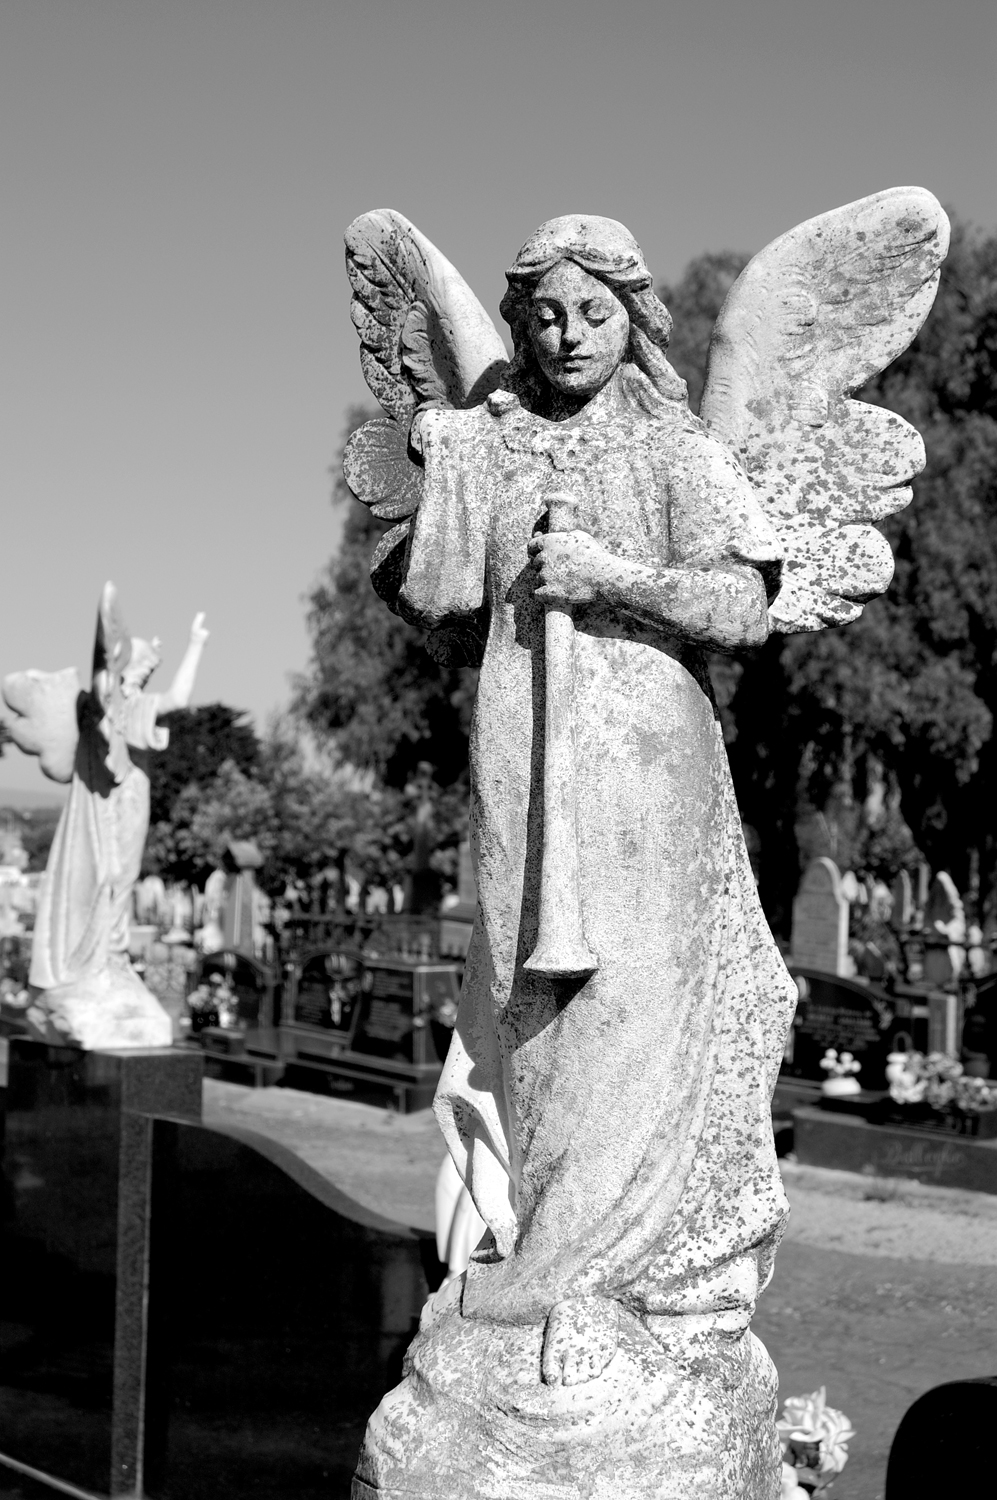 untitled #53  [melbourne general cemetery, parkville, victoria, australia, 2005]